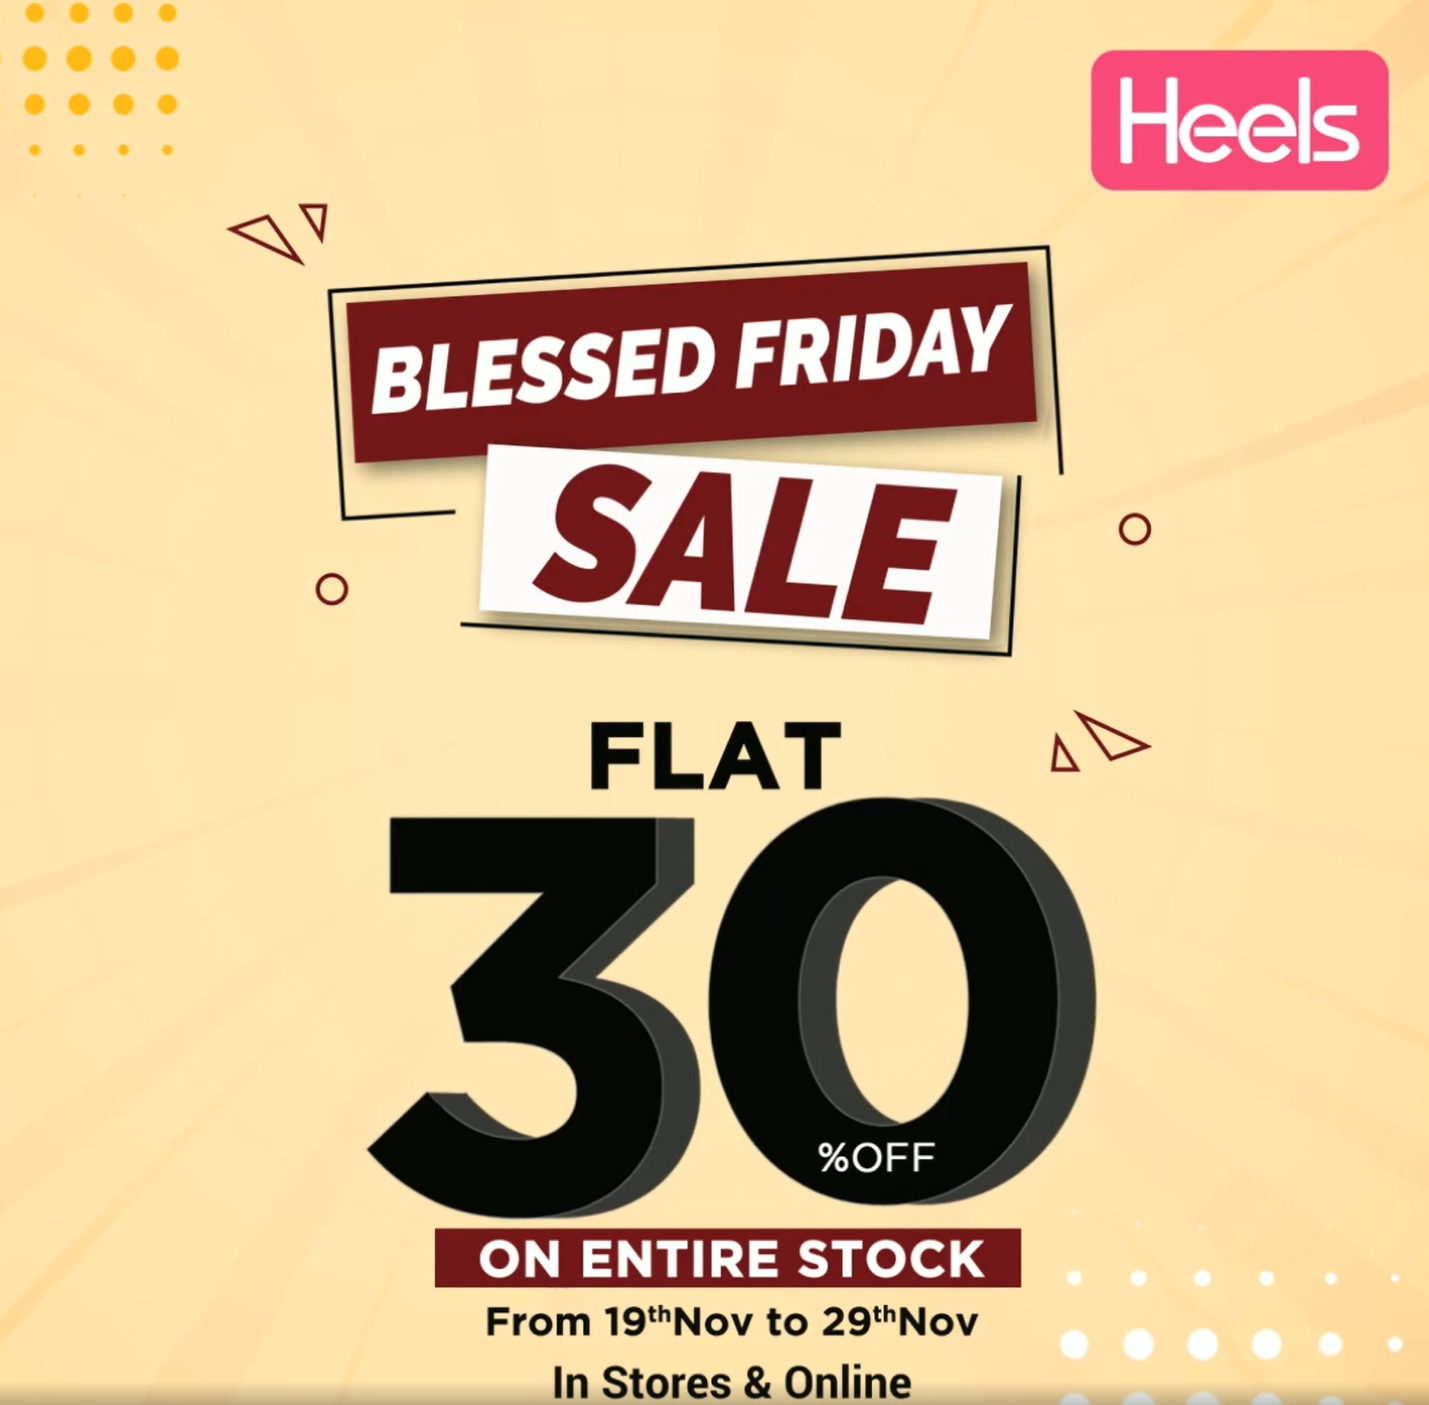 Heels - Blessed Friday Sale